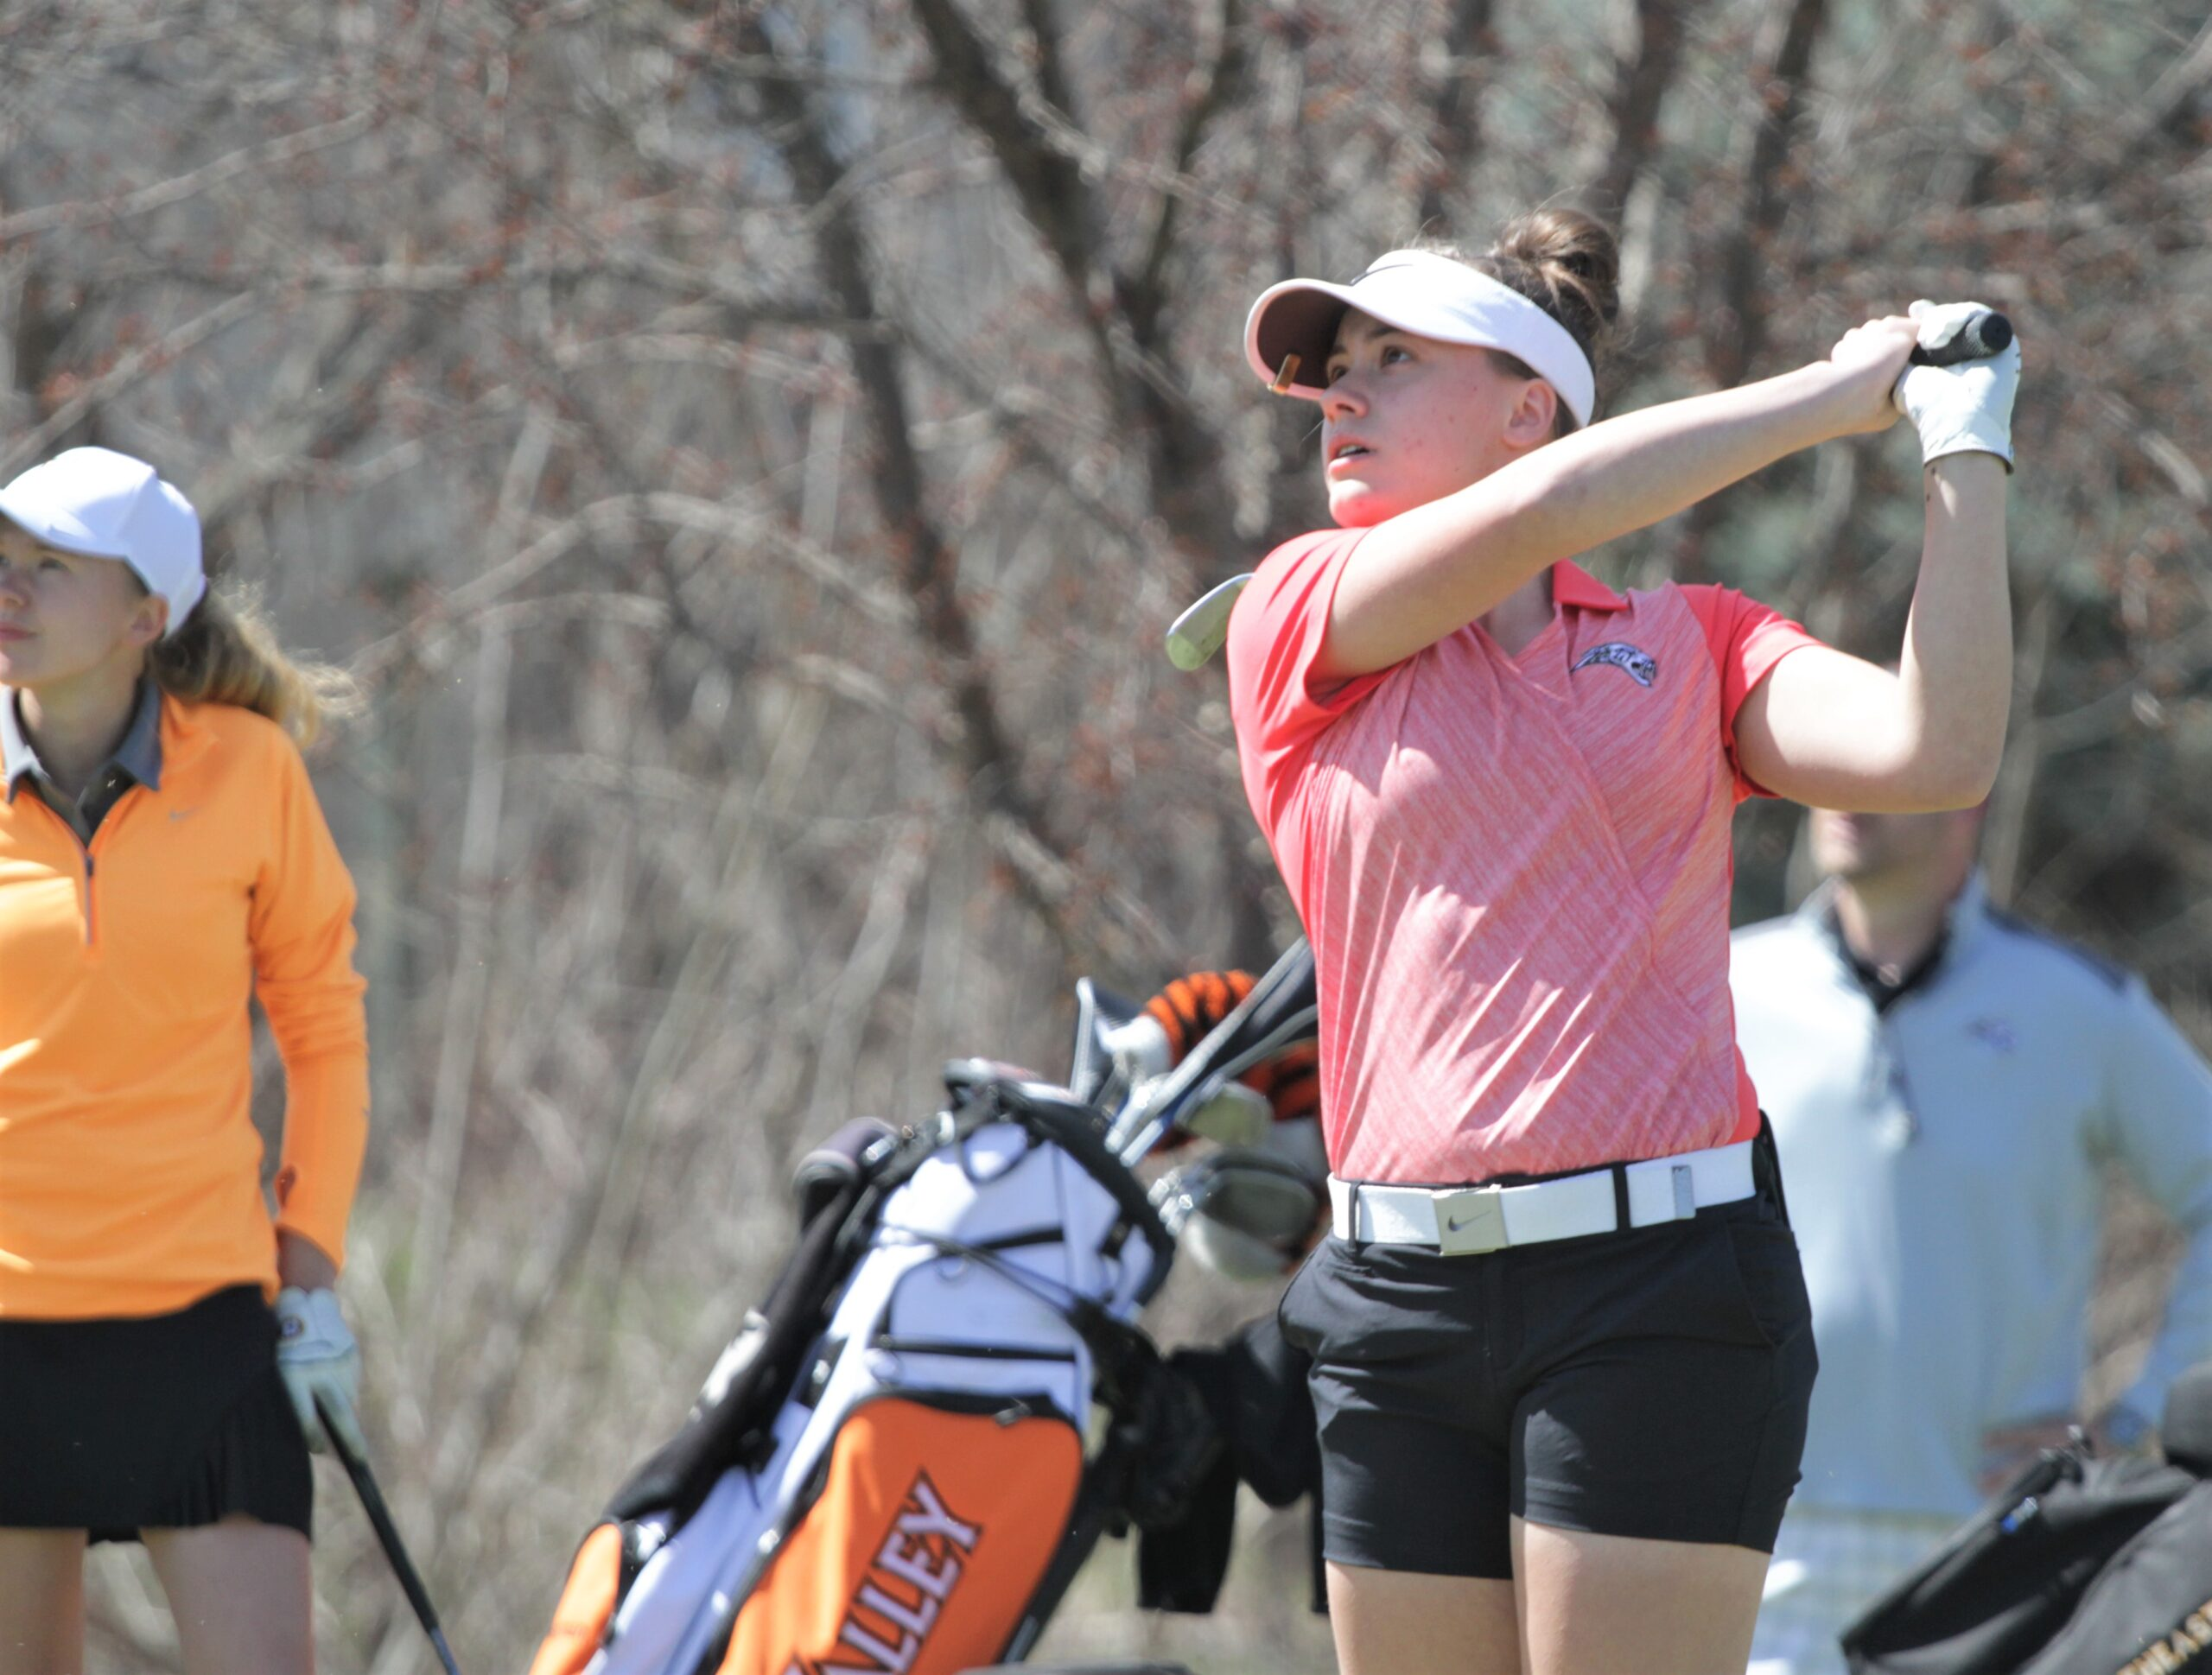 Ankeny Fanatic announces its all-time Ankeny girls' golf team